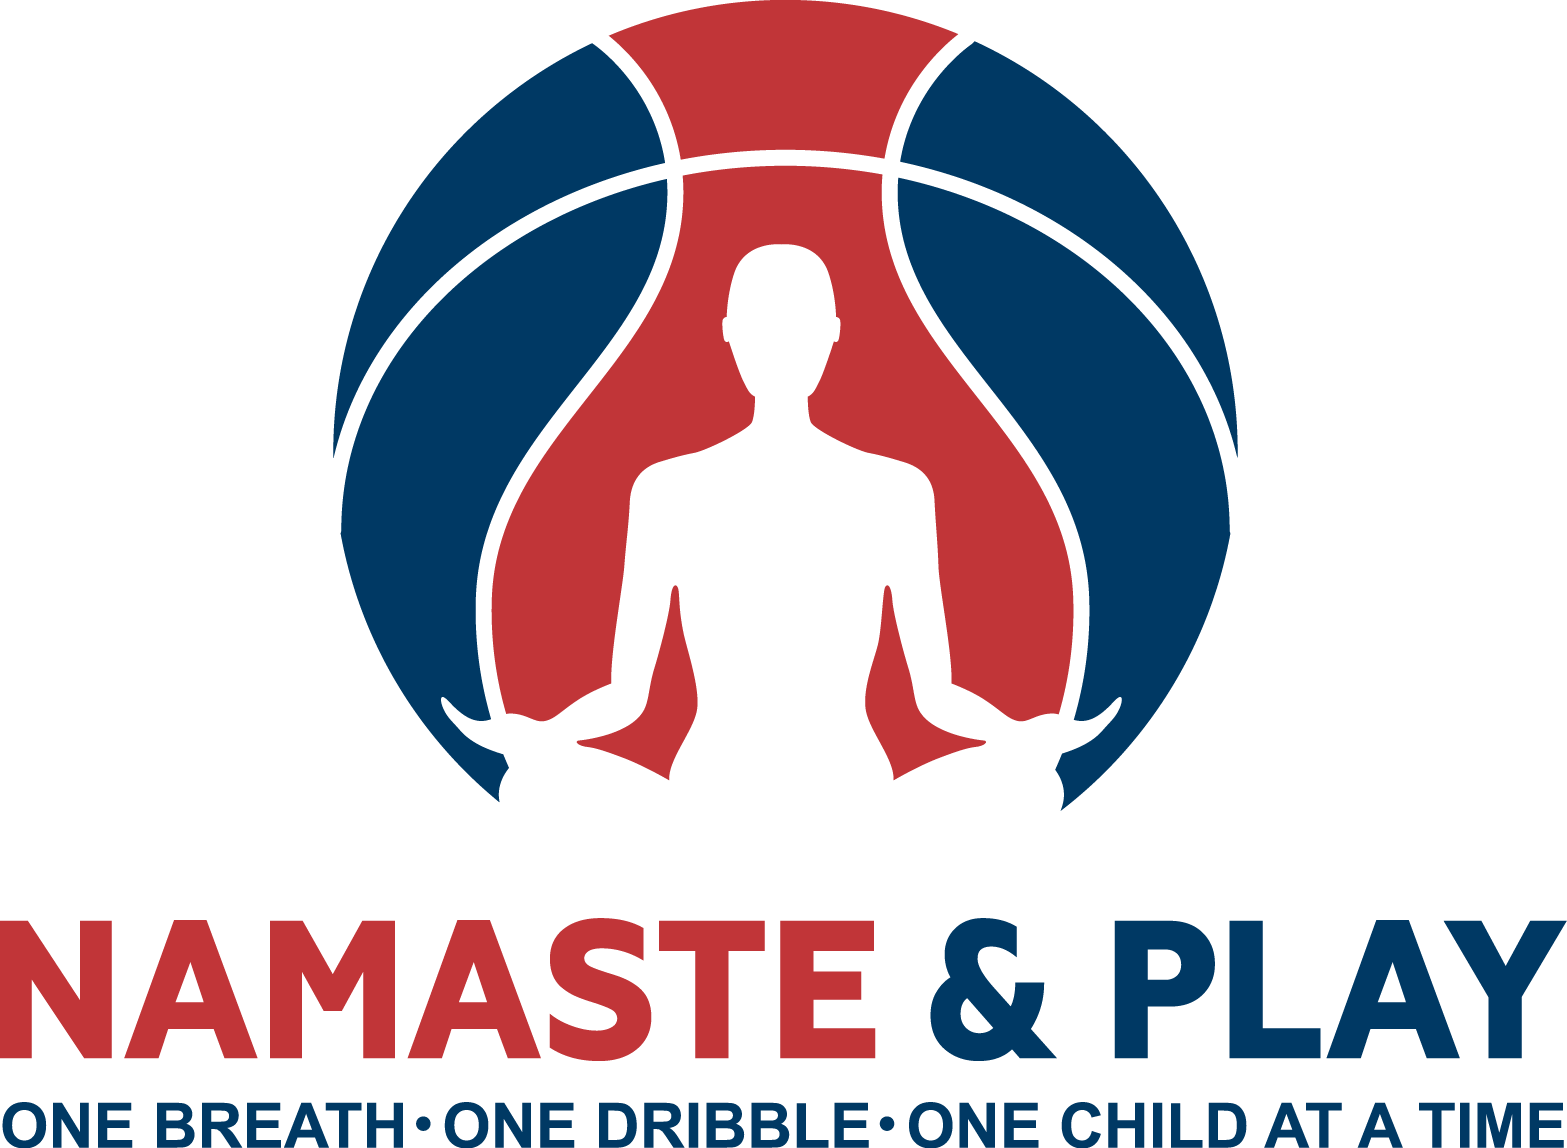 Please join our family as we bring the joy of yoga and basketball to children in developing nations. -